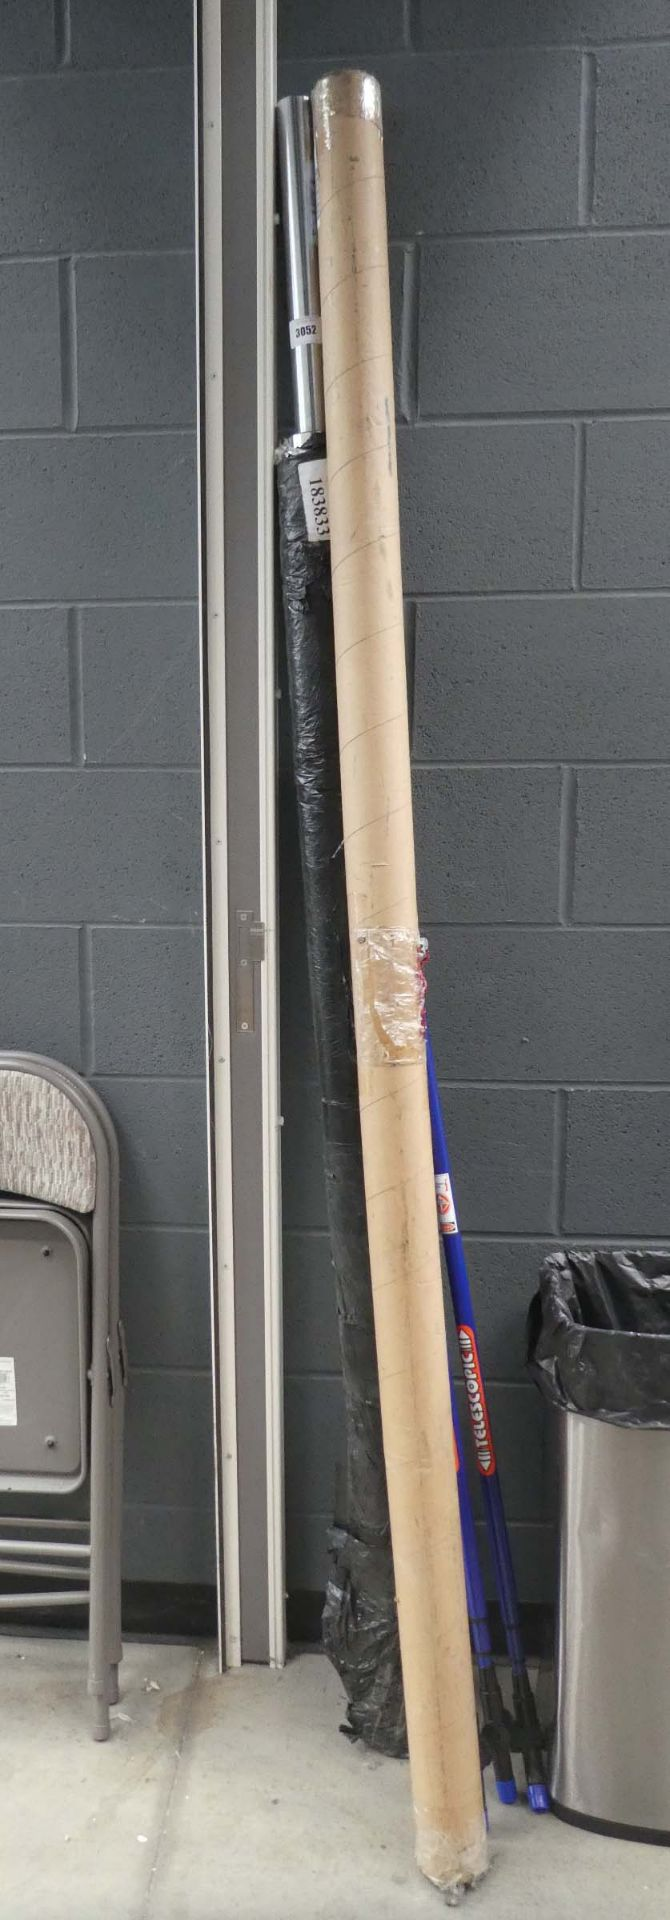 2 Olympic bench press bars - Image 2 of 2